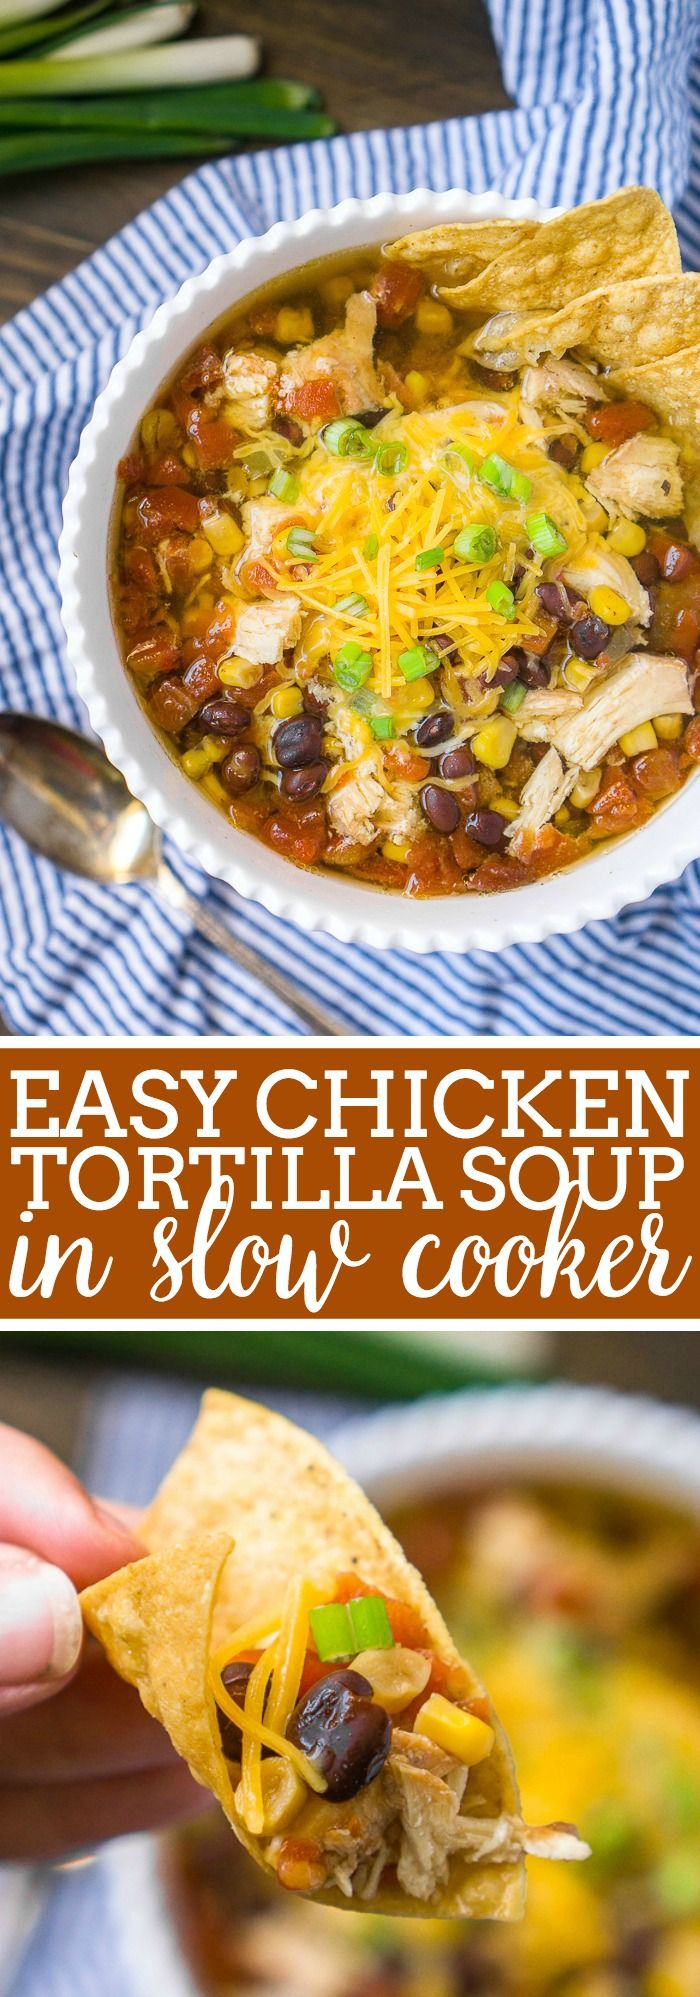 Easy Chicken Tortilla Soup Recipe in the Slow Cooker with10 minutes of prep work! Hearty and flavorful with chicken, veggies and spices! Optional Toppings, including the tortilla chips added individually for anyone with a gluten free diet, make it easy to make a fun soup bar for any guests! | The Love Nerds #chickensoup #chickentortillasoup #slowcookersoup  via @lovenerdmaggie